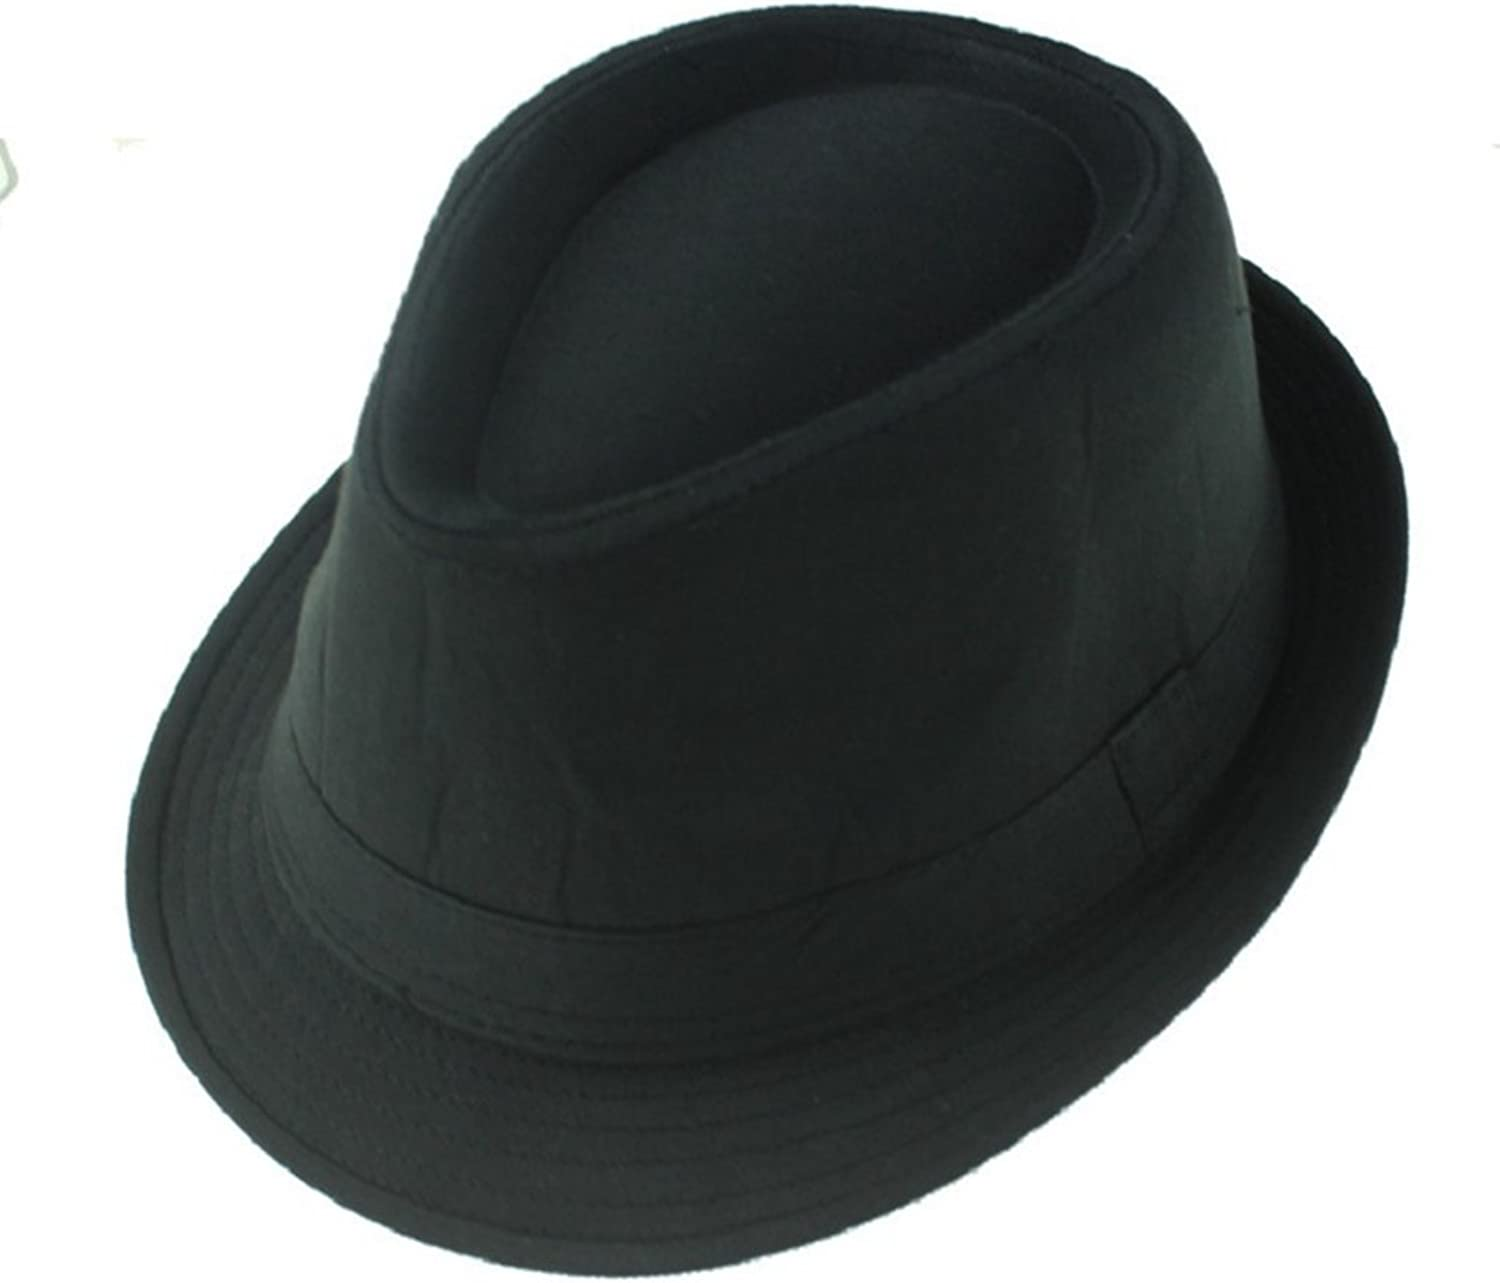 AOBRITON Fedoras Jazz Hat Bucket Panama Gentleman Cap for Travel Vacation Black